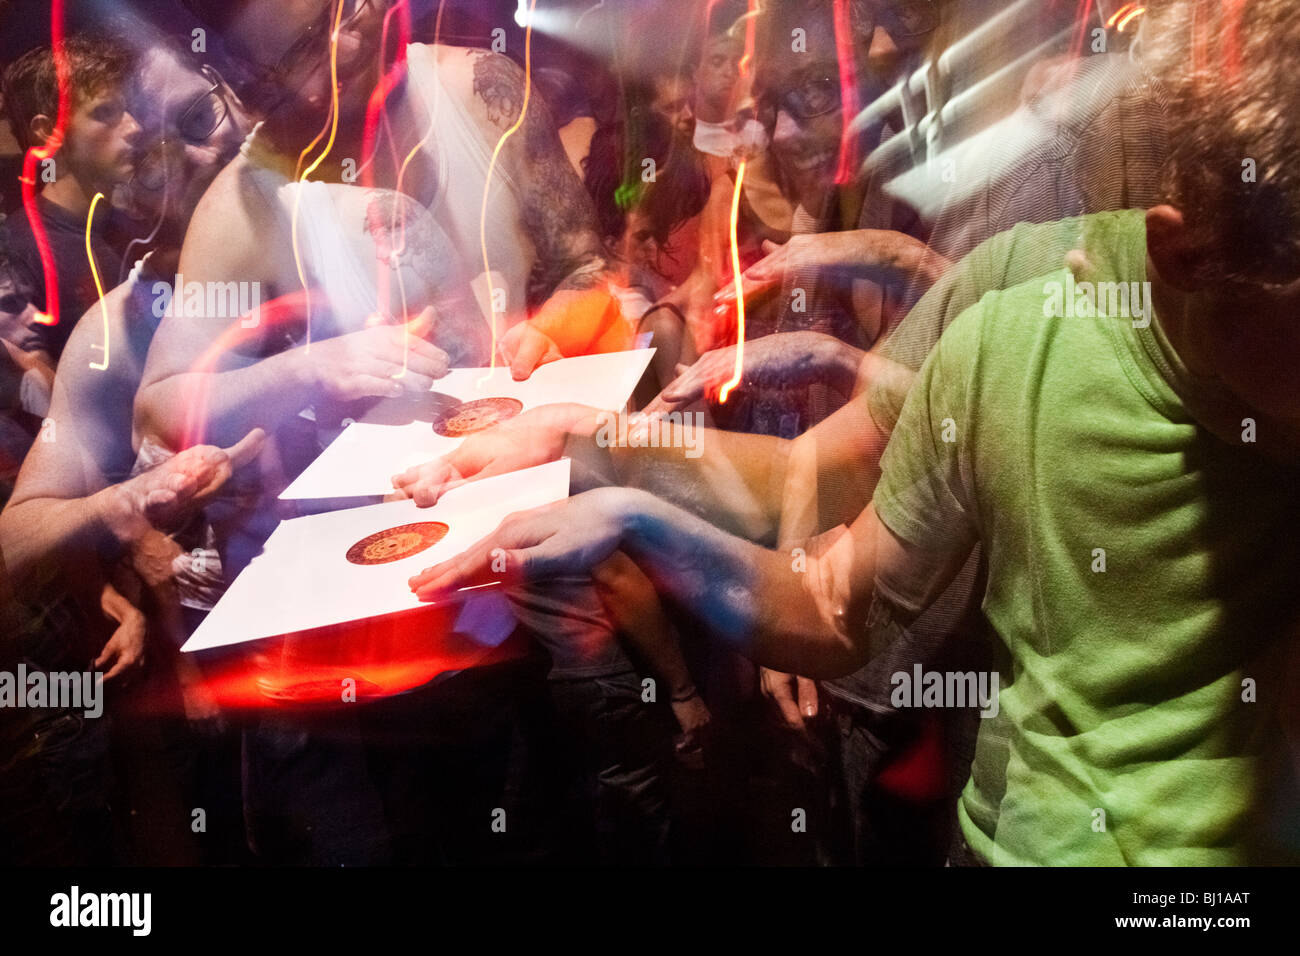 Partyers pretending to spin a record at Zizek Electro, Cumbia and Reggaeton party at Niceto Club, Buenos Aires - Stock Image